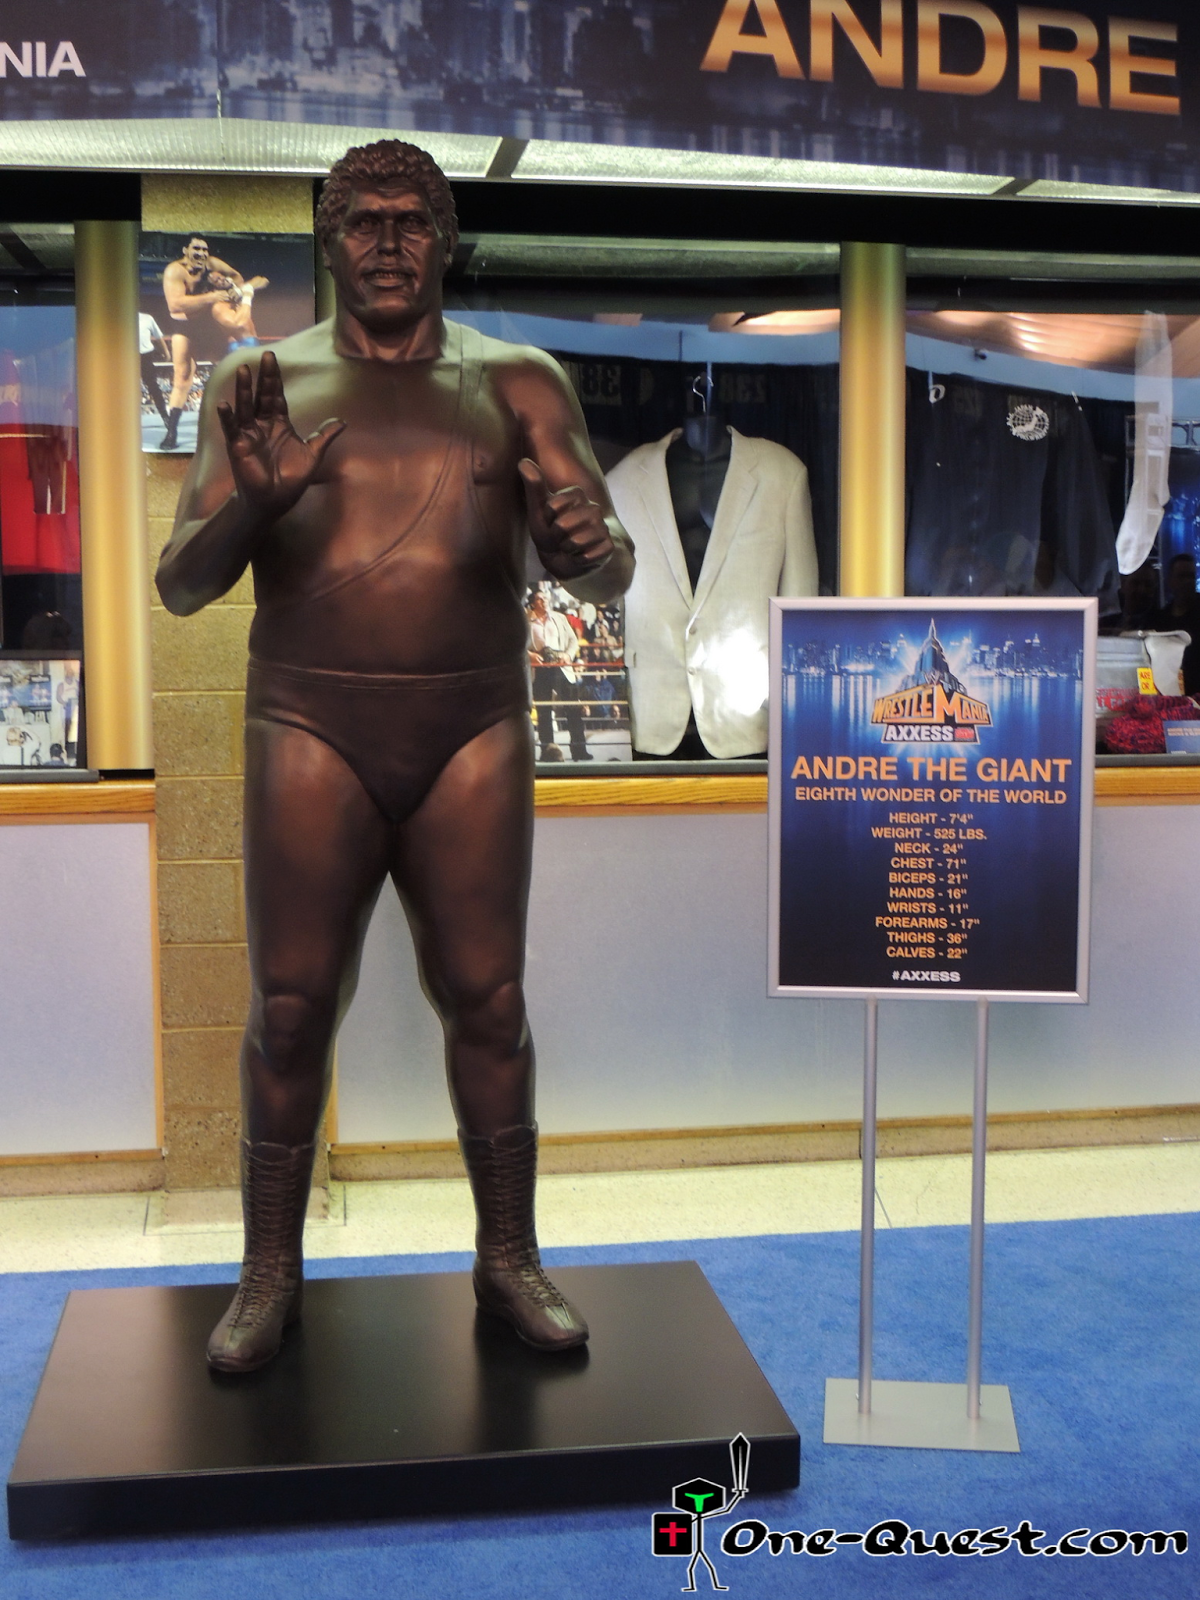 Andre the Giant statue